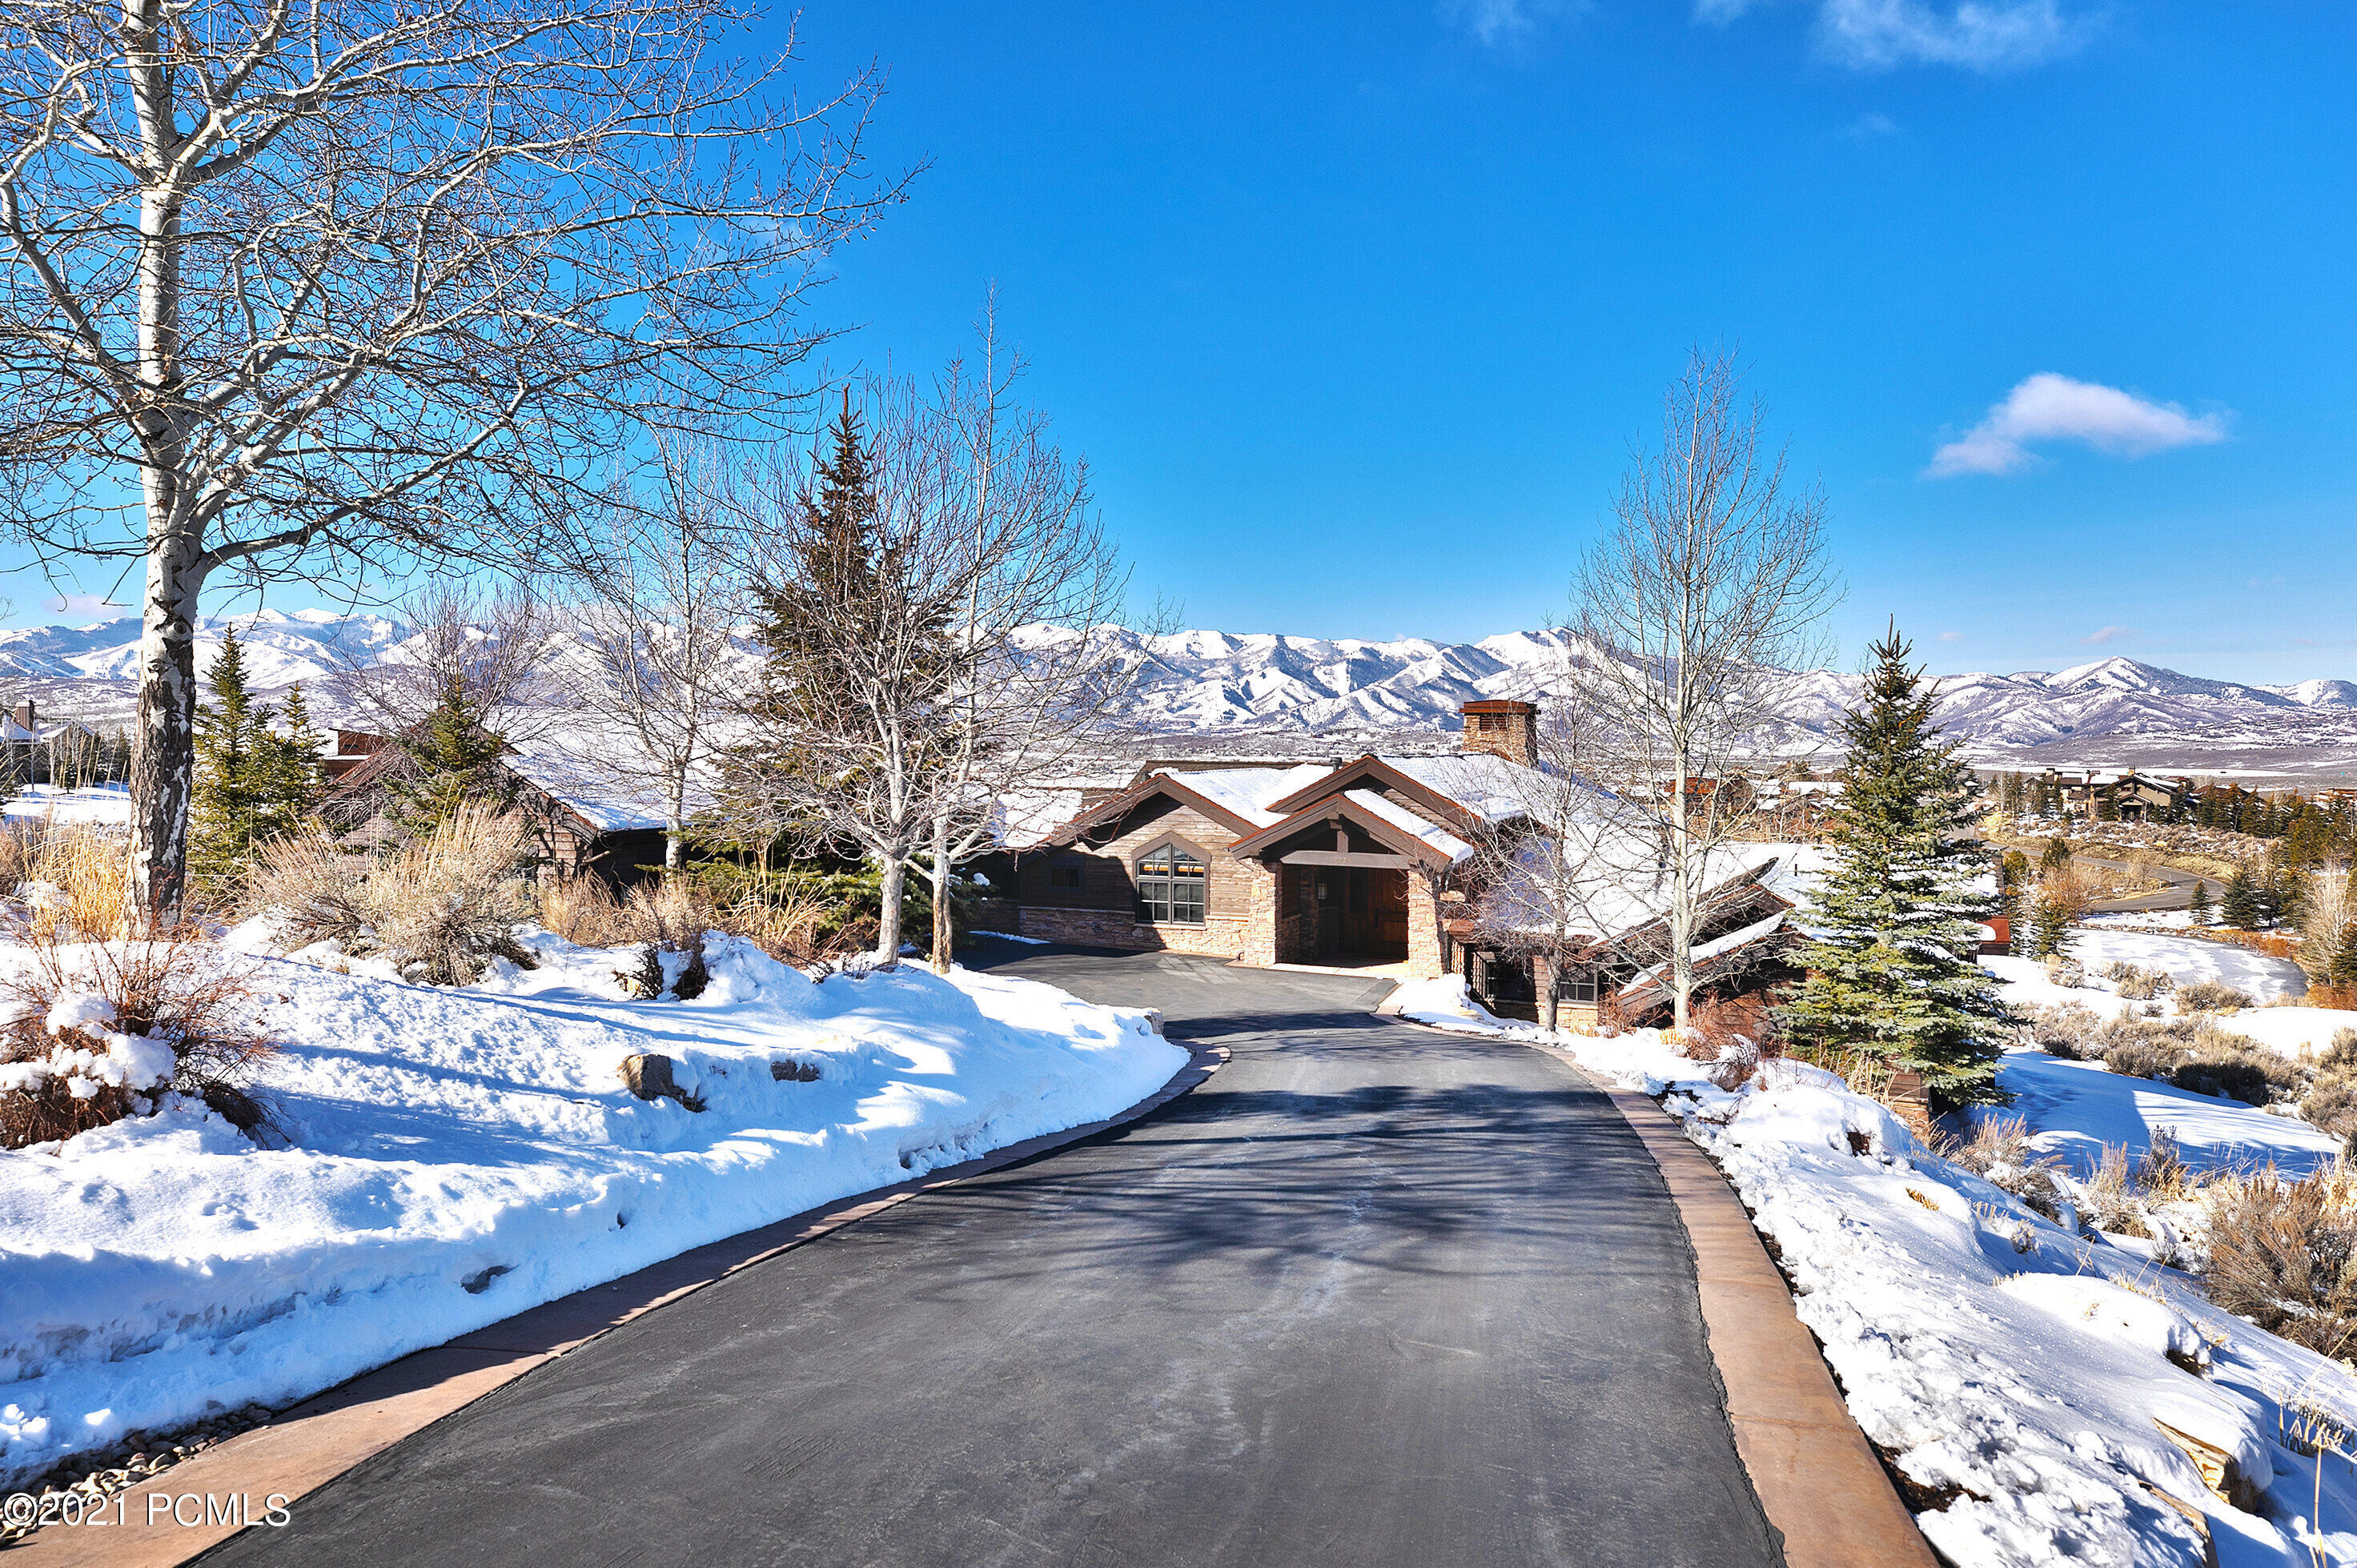 Great location overlooking the 4th green of the Dye golf course in the West View neighborhood.  Enjoy the beautiful sunsets and unobstructed golf & ski resort views from the large, covered deck with an outdoor fireplace.  As you enter the front door, you are welcomed by a great room with a floor to ceiling stone fireplace and an open floor plan perfect for entertaining.  Kitchen includes high end Viking and Sub-Zero appliances and large granite island.  Spacious owner and guest suites on opposite sides of home offer privacy.  Walkout lower level showcases a family room with another floor to ceiling stone fireplace, wet bar and 2 en suite bedrooms. Additional features include a lower patio with a hot tub & fire pit.  You will appreciate the home audio system and heated oversized 3 car garage with epoxy floors.  Very convenient location to the many club amenities including the beach club, tubing hill, pools, spas, gym, tennis, pickle ball, golf club houses, kids' cabin, Equestrian Center and the Shed, which features indoor basketball, bowling & a theater.